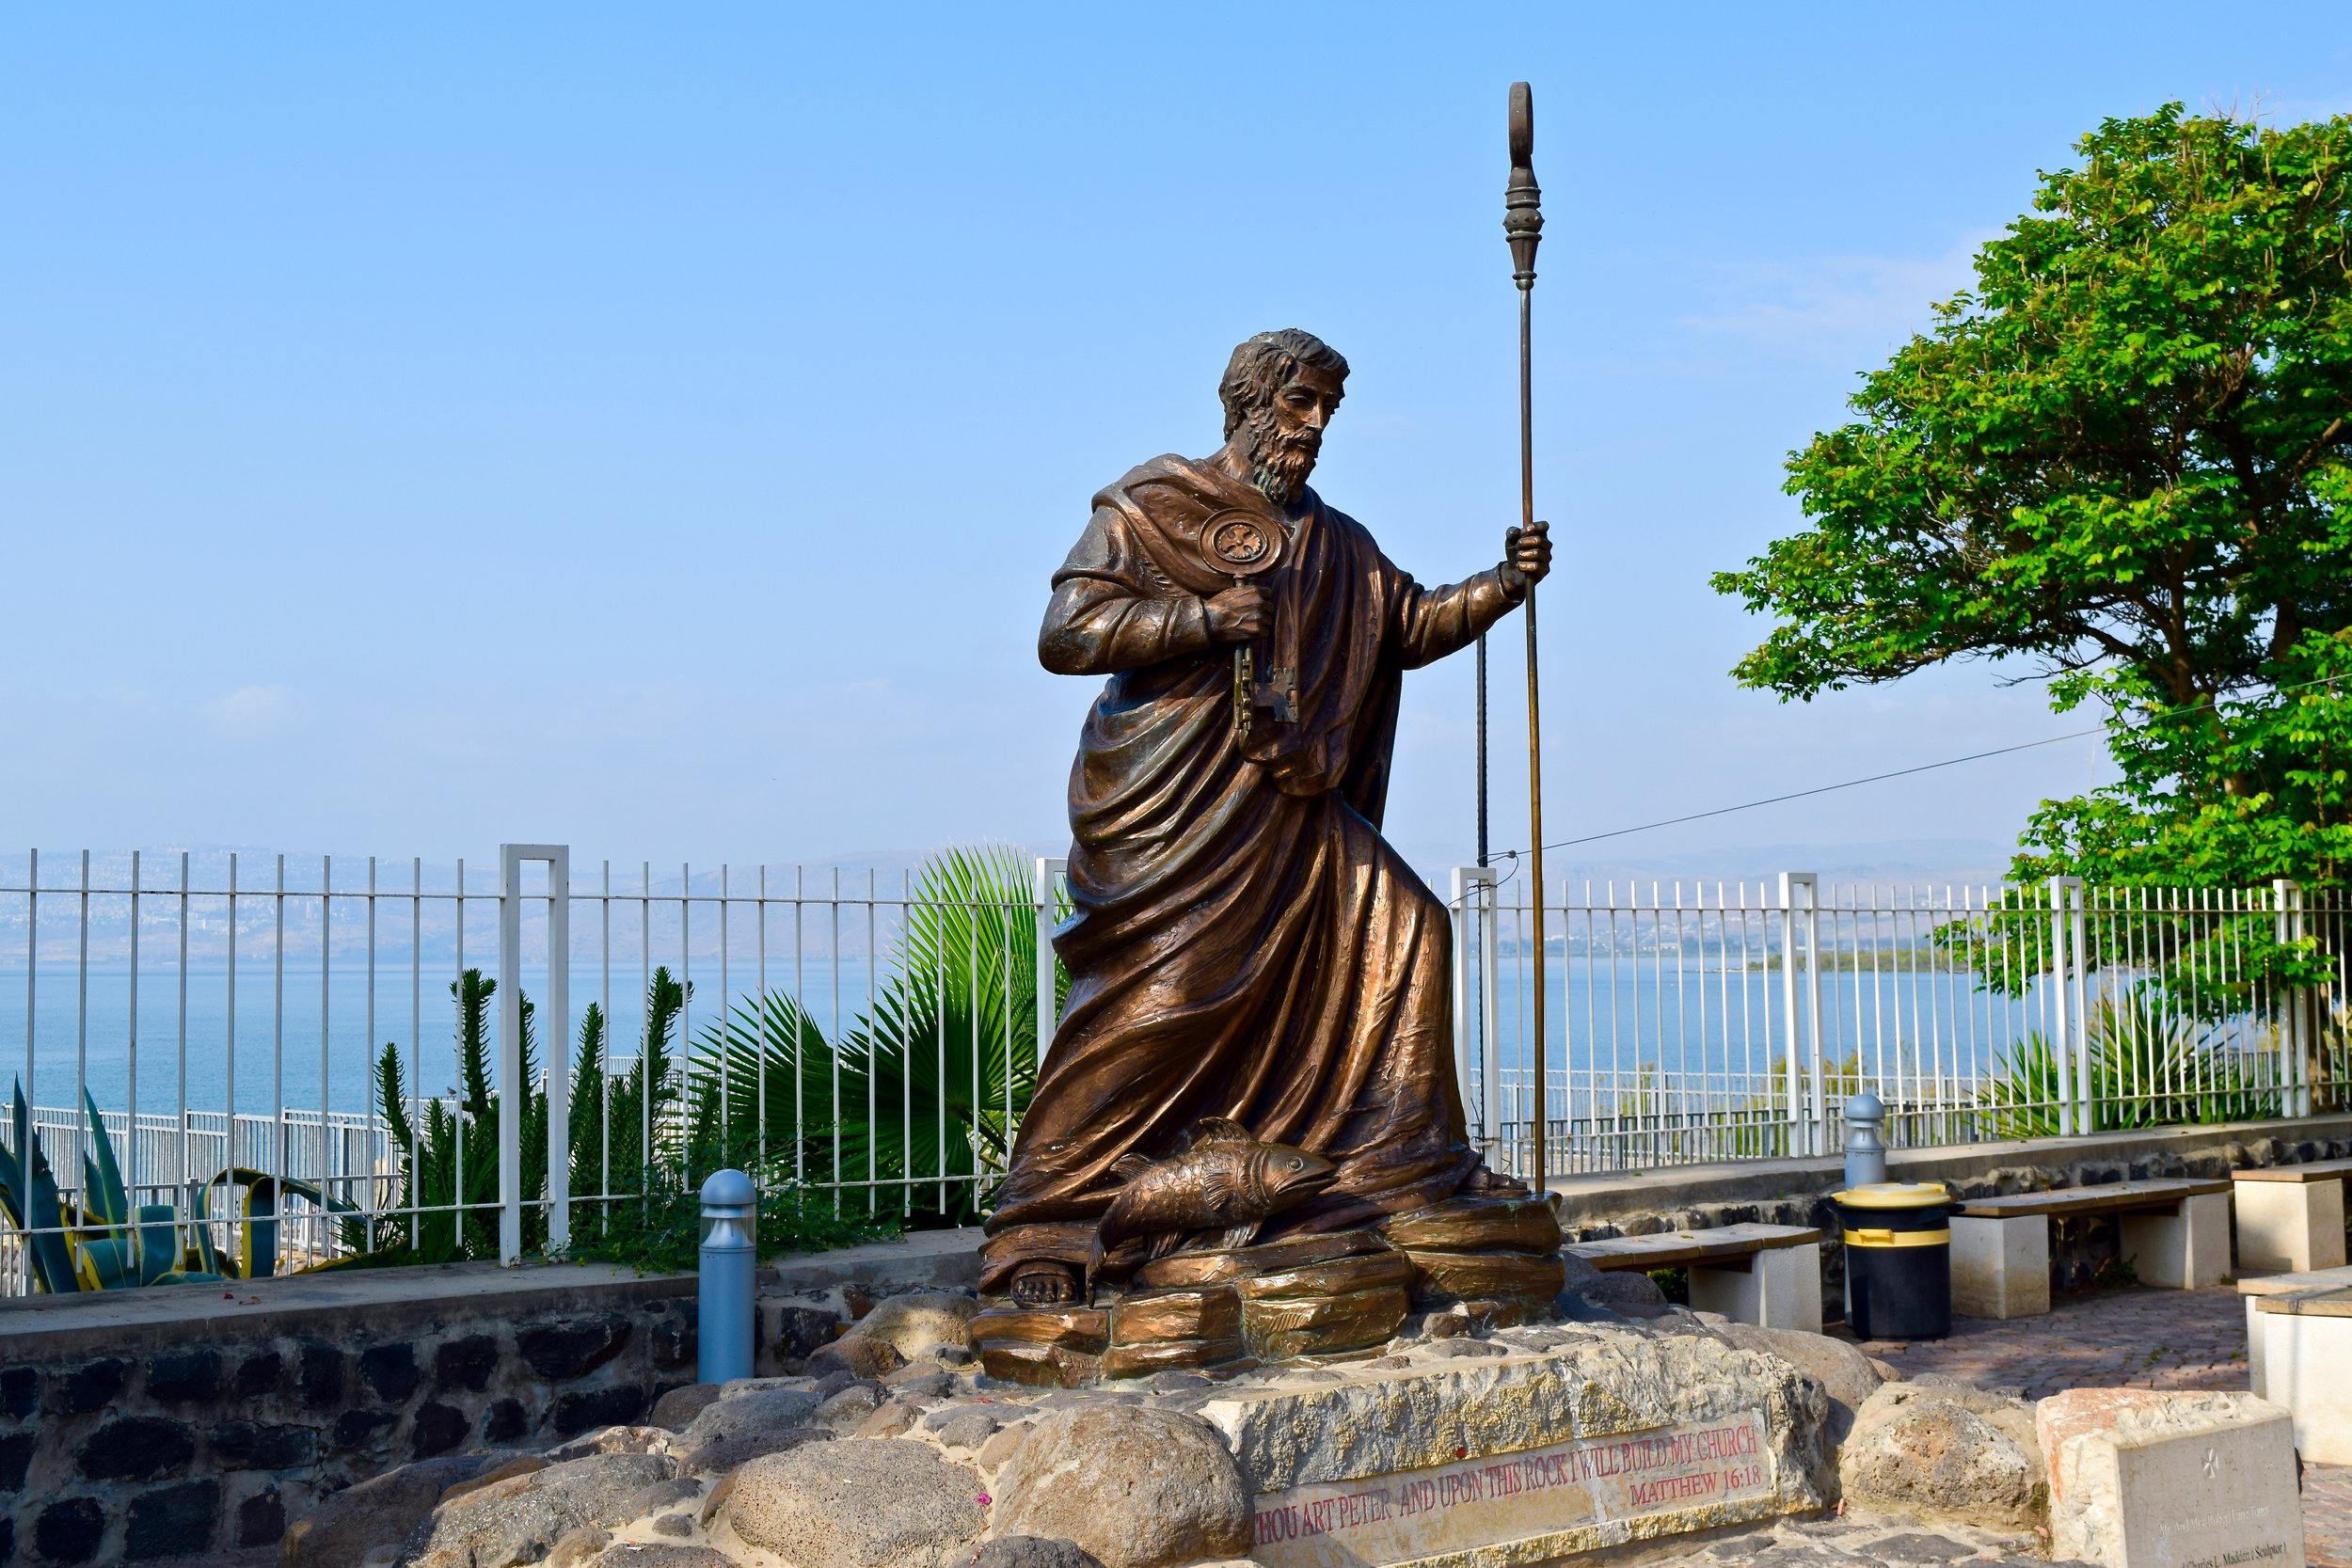 Statue of St. Peter with the Sea of Galilee in the background